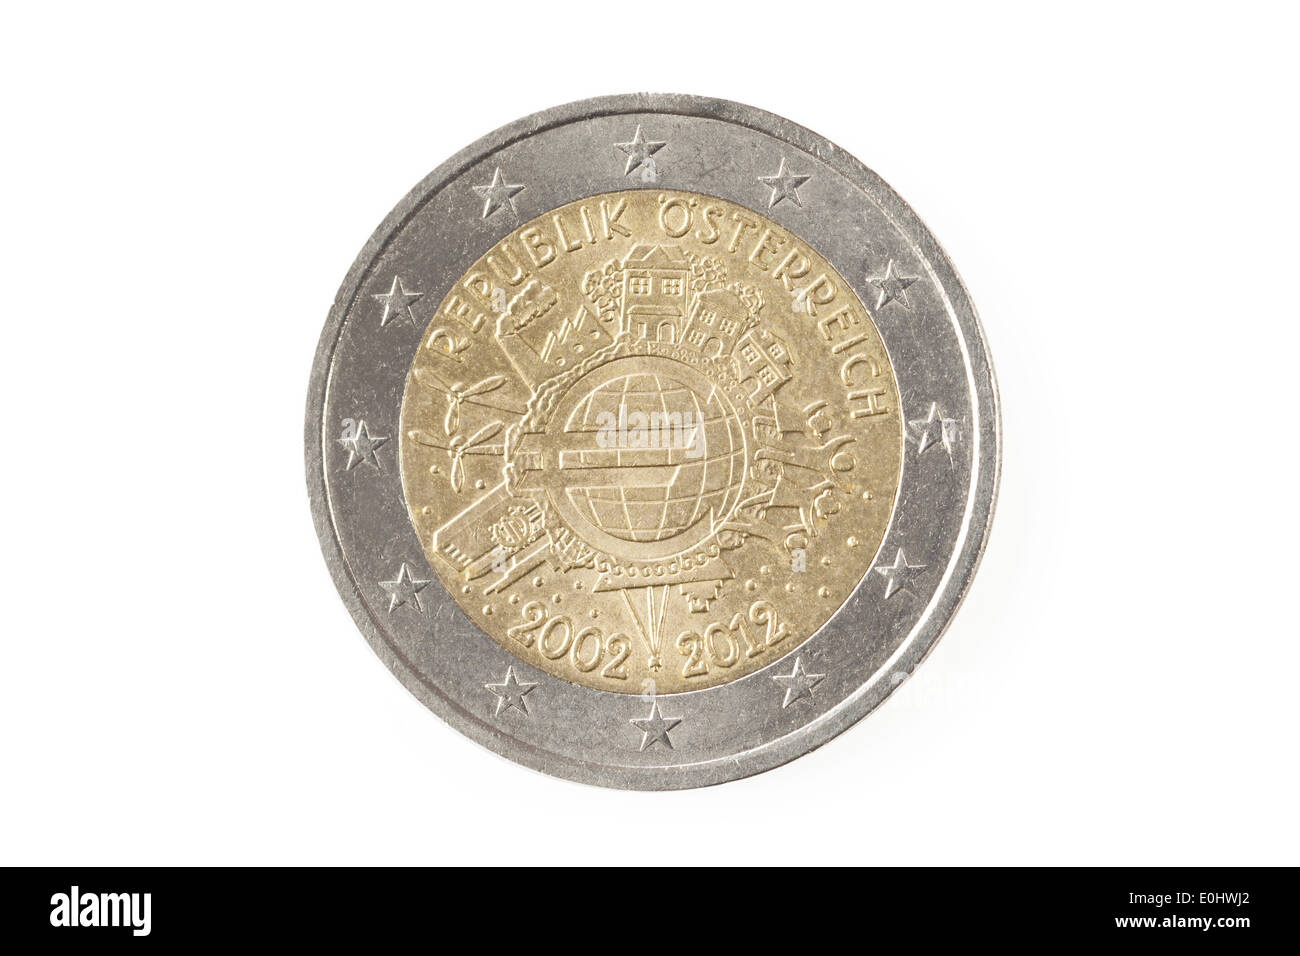 Back of an austrian two euro coin isolated on a white background - Stock Image